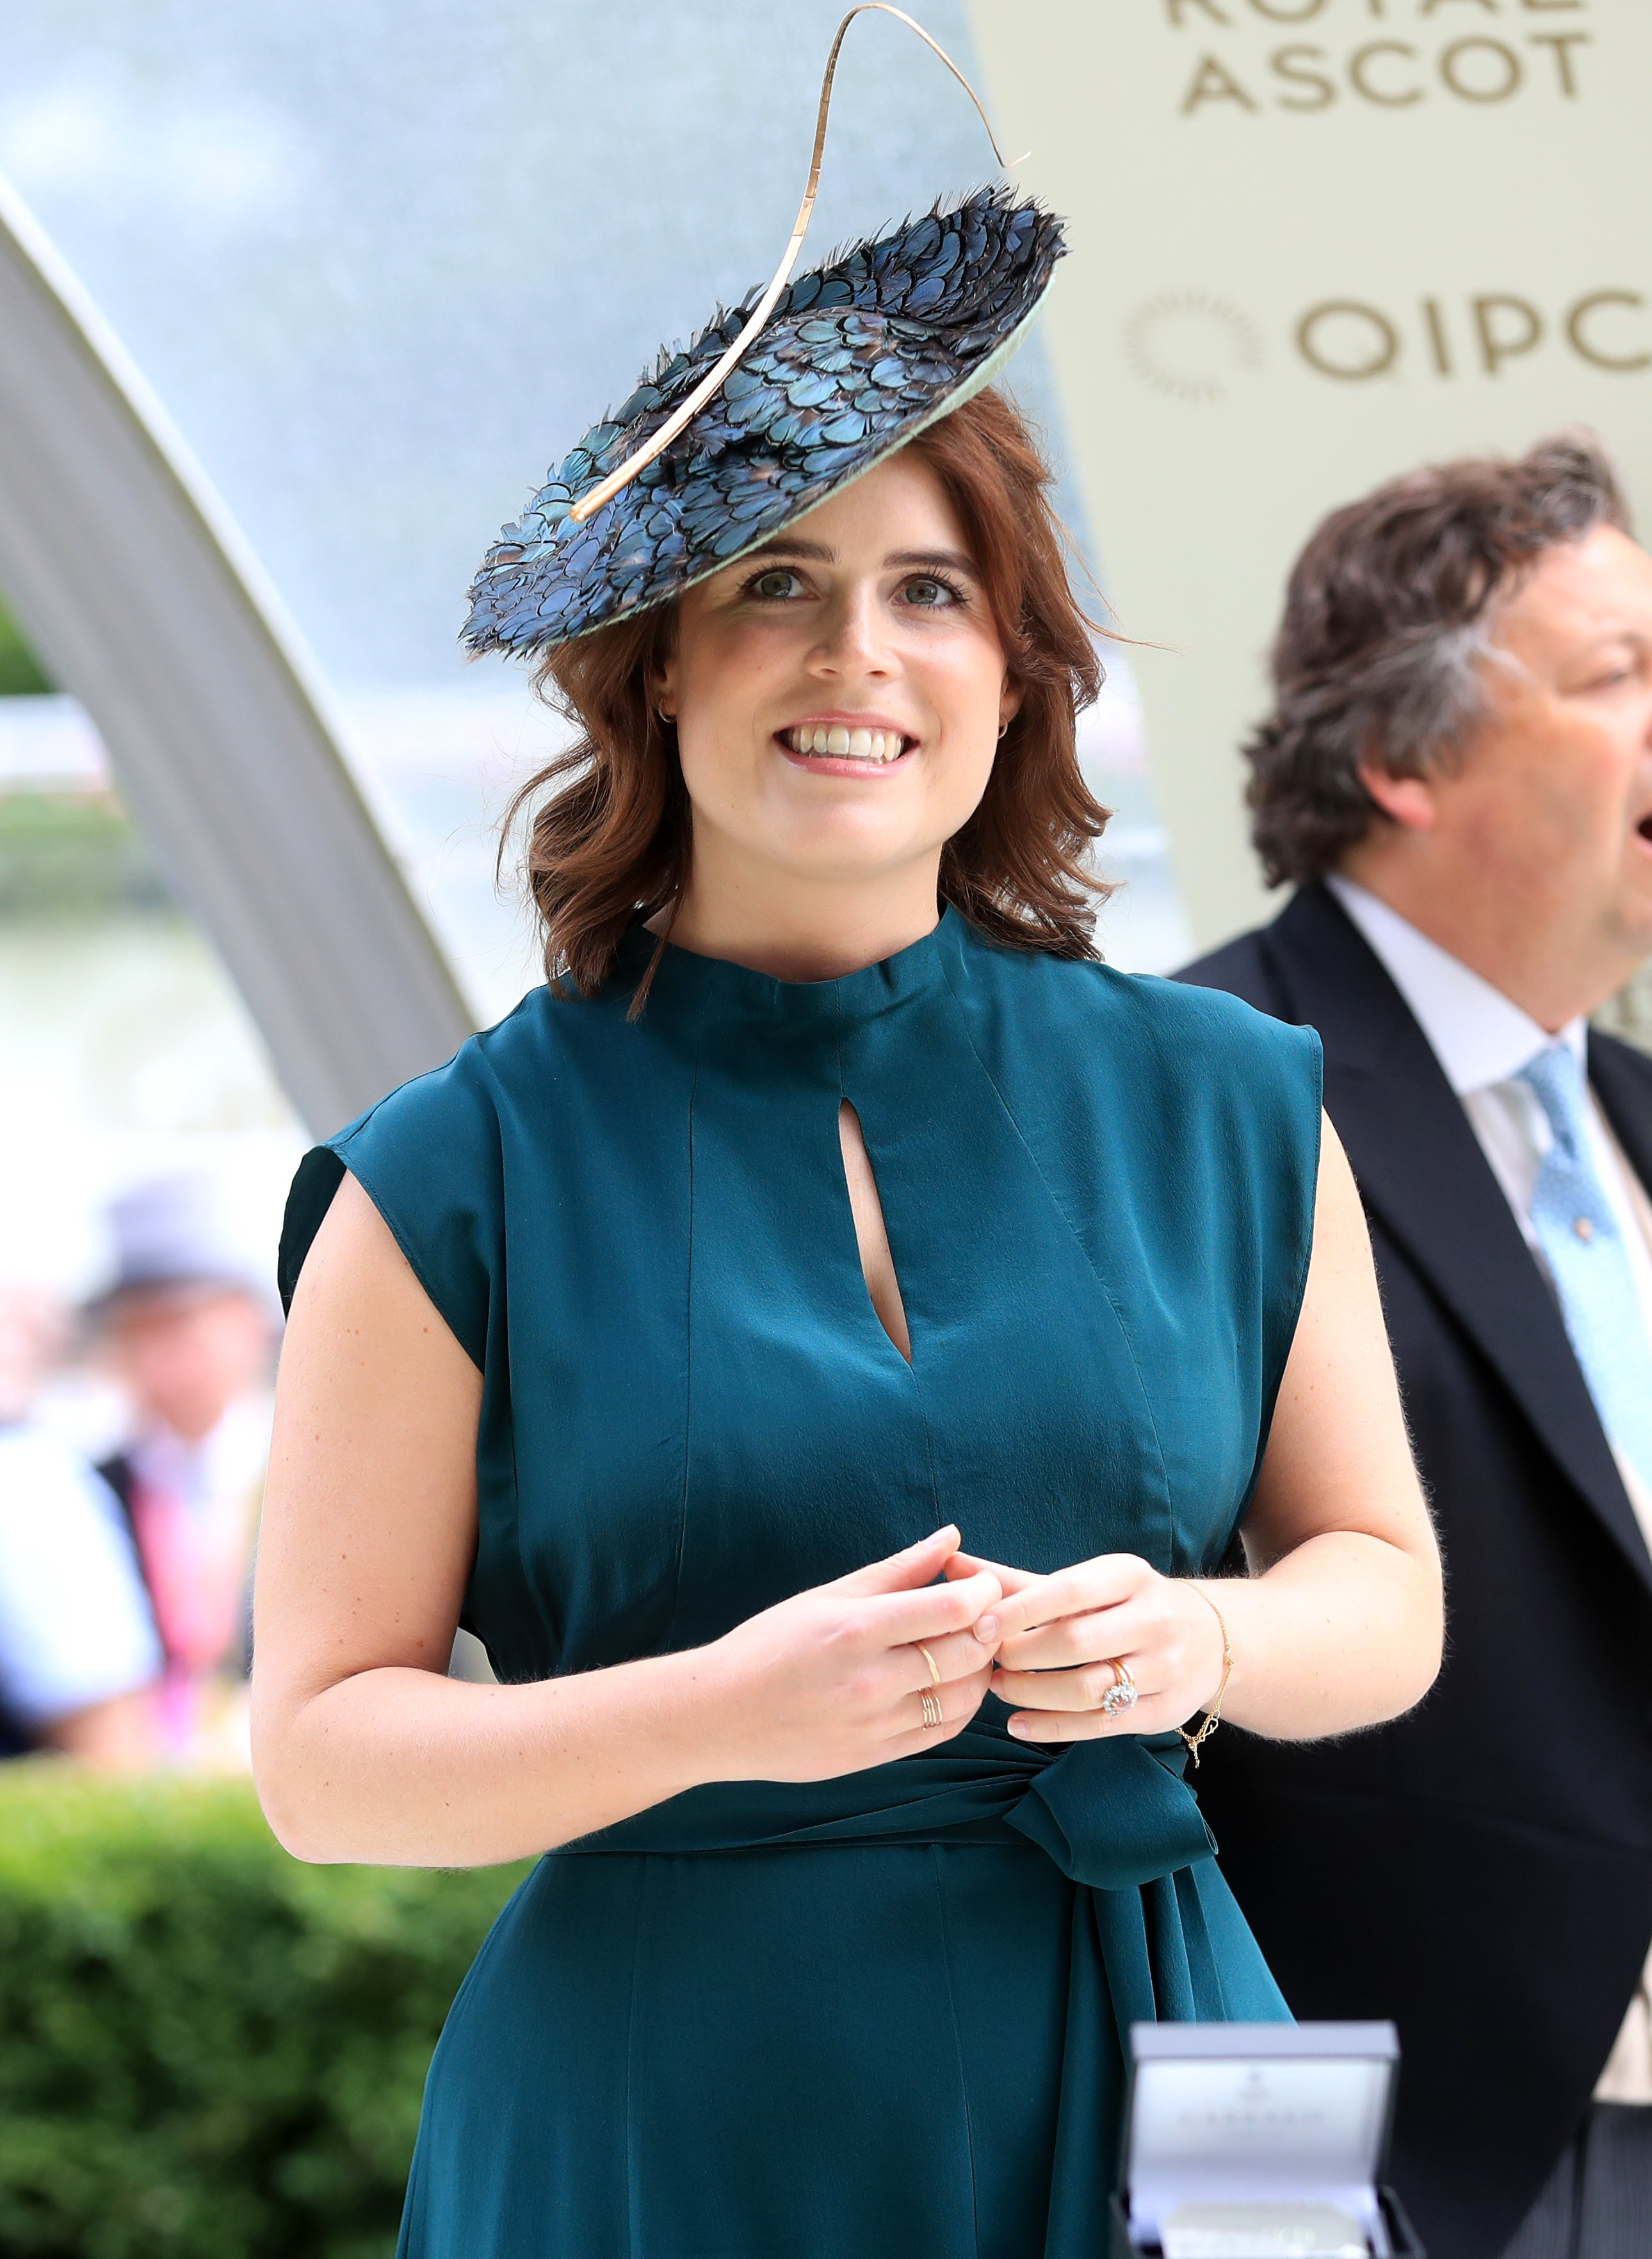 Princess Eugenie in the winners enclosure during day three of Royal Ascot at Ascot Racecourse in June 2019. | Photo: Getty Images.